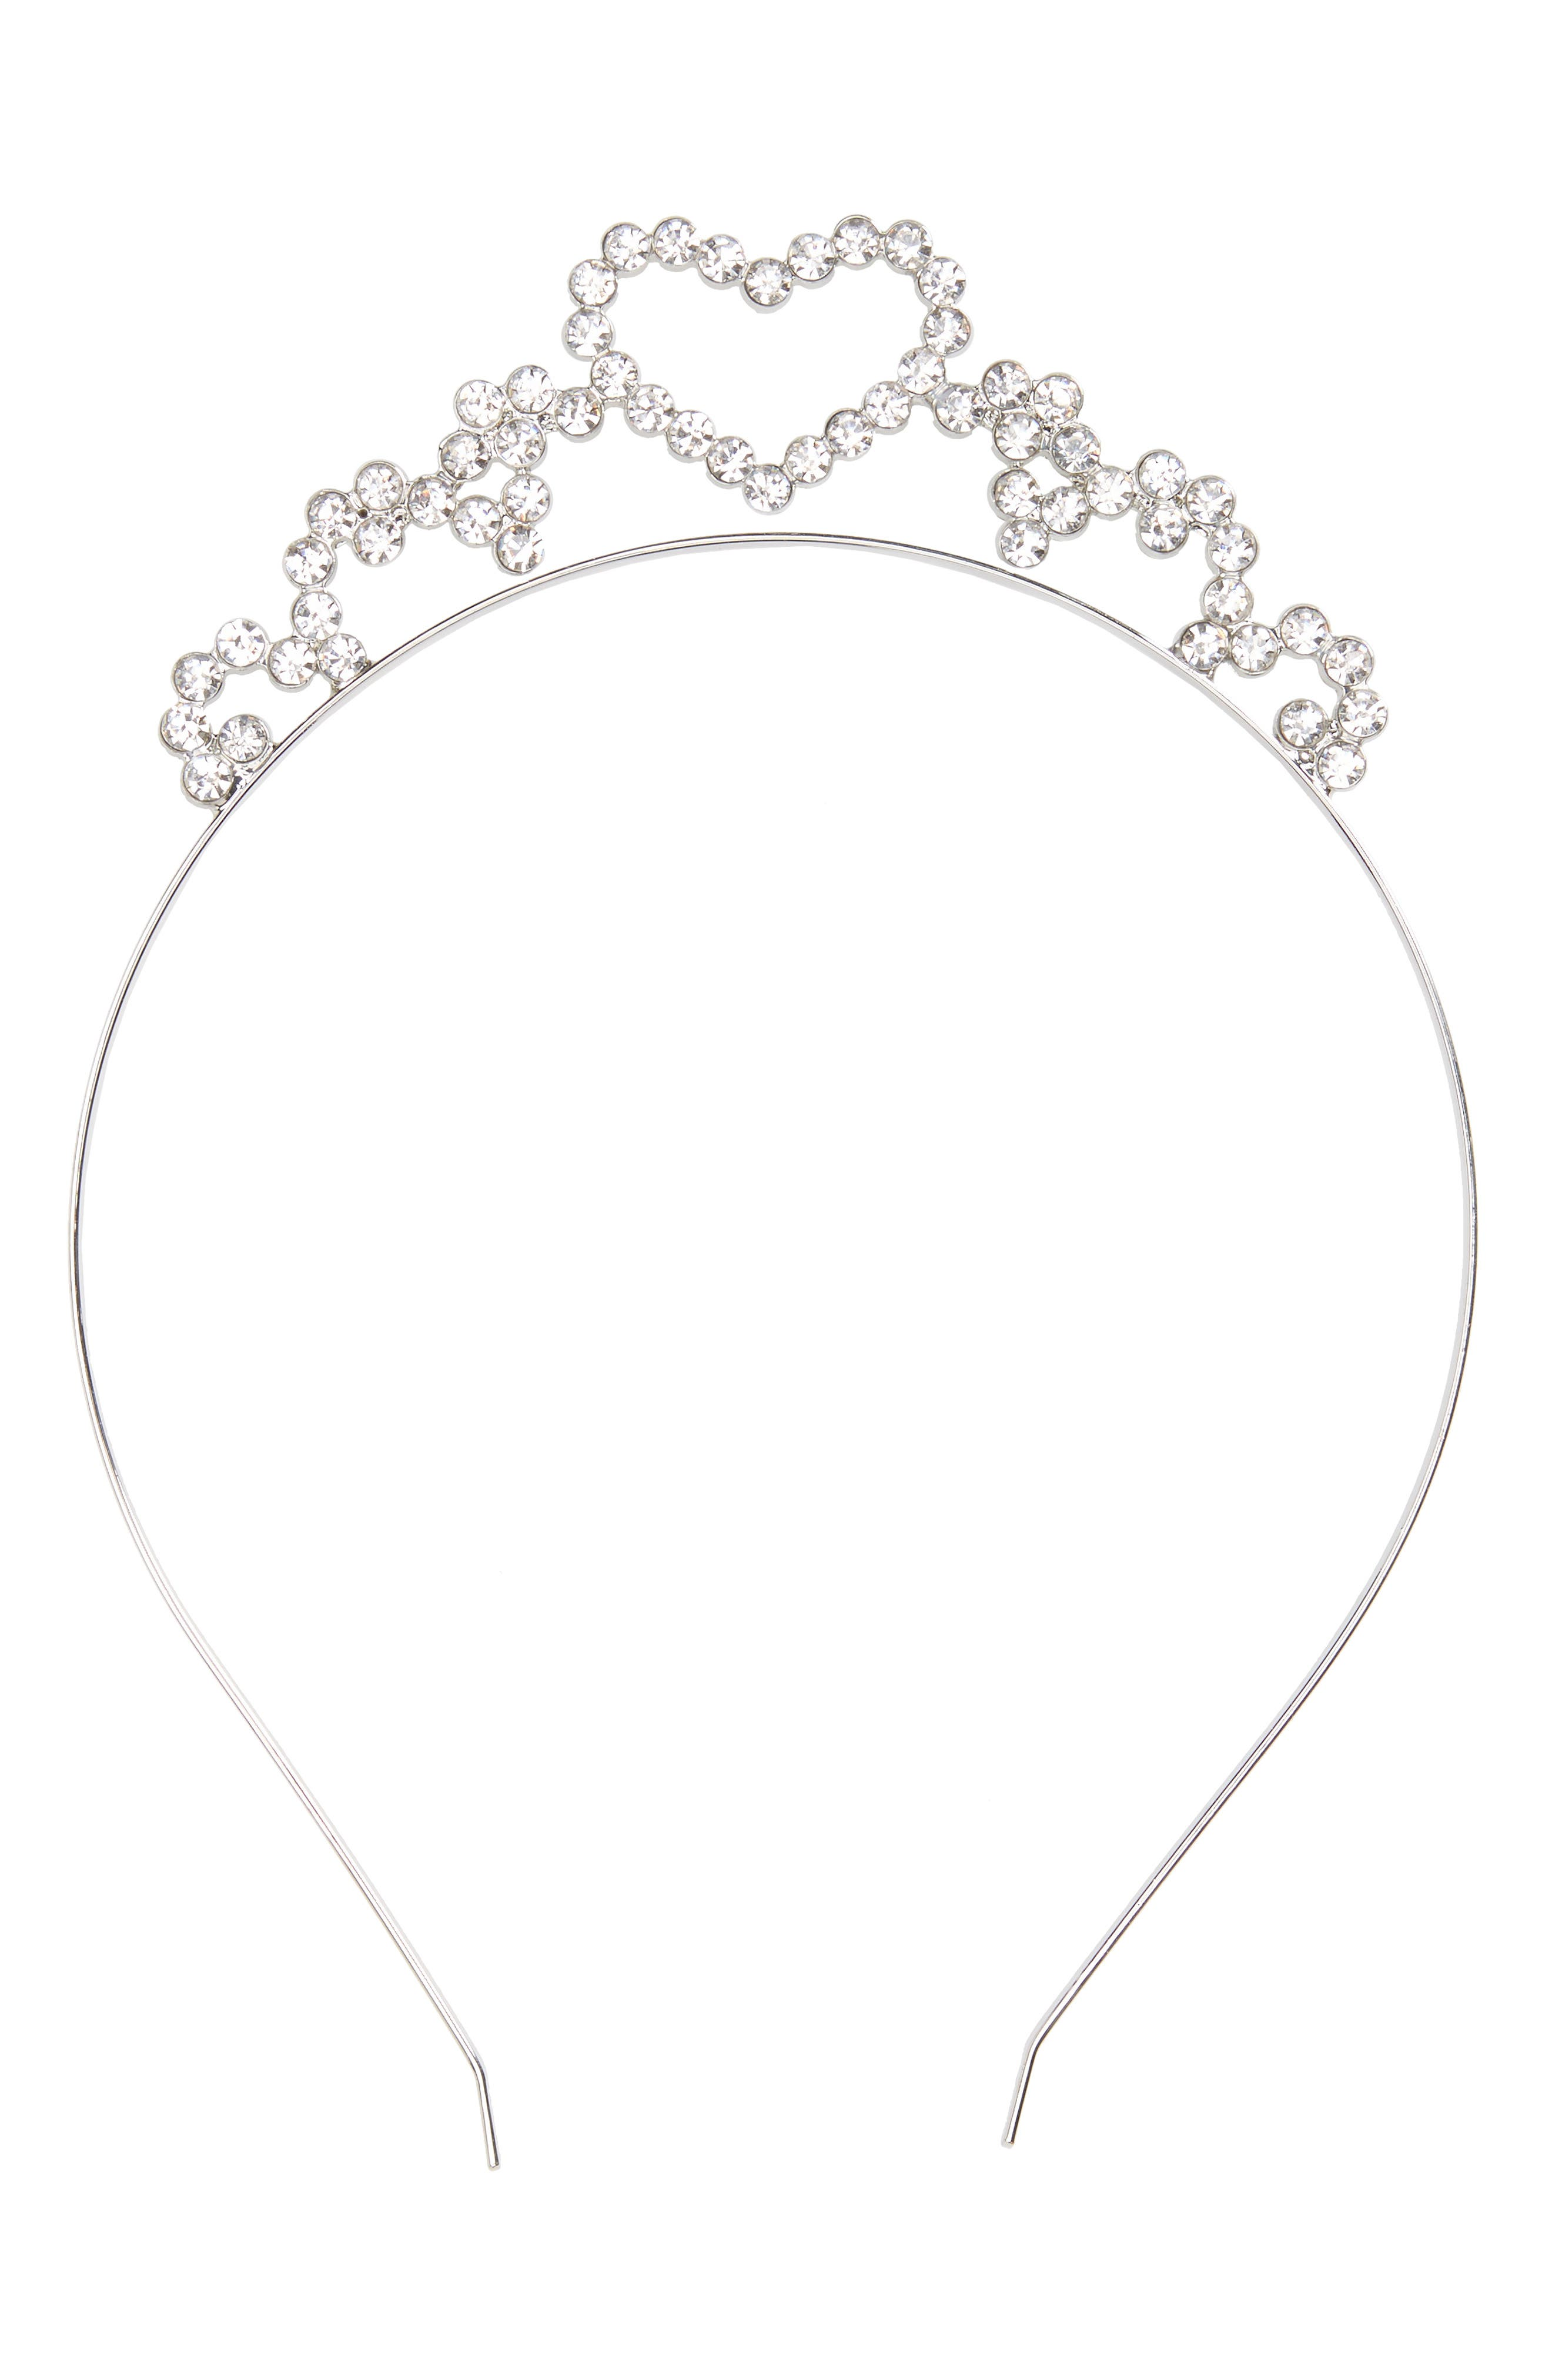 Main Image - Accessory Collective Crystal Heart Headband (Girls)